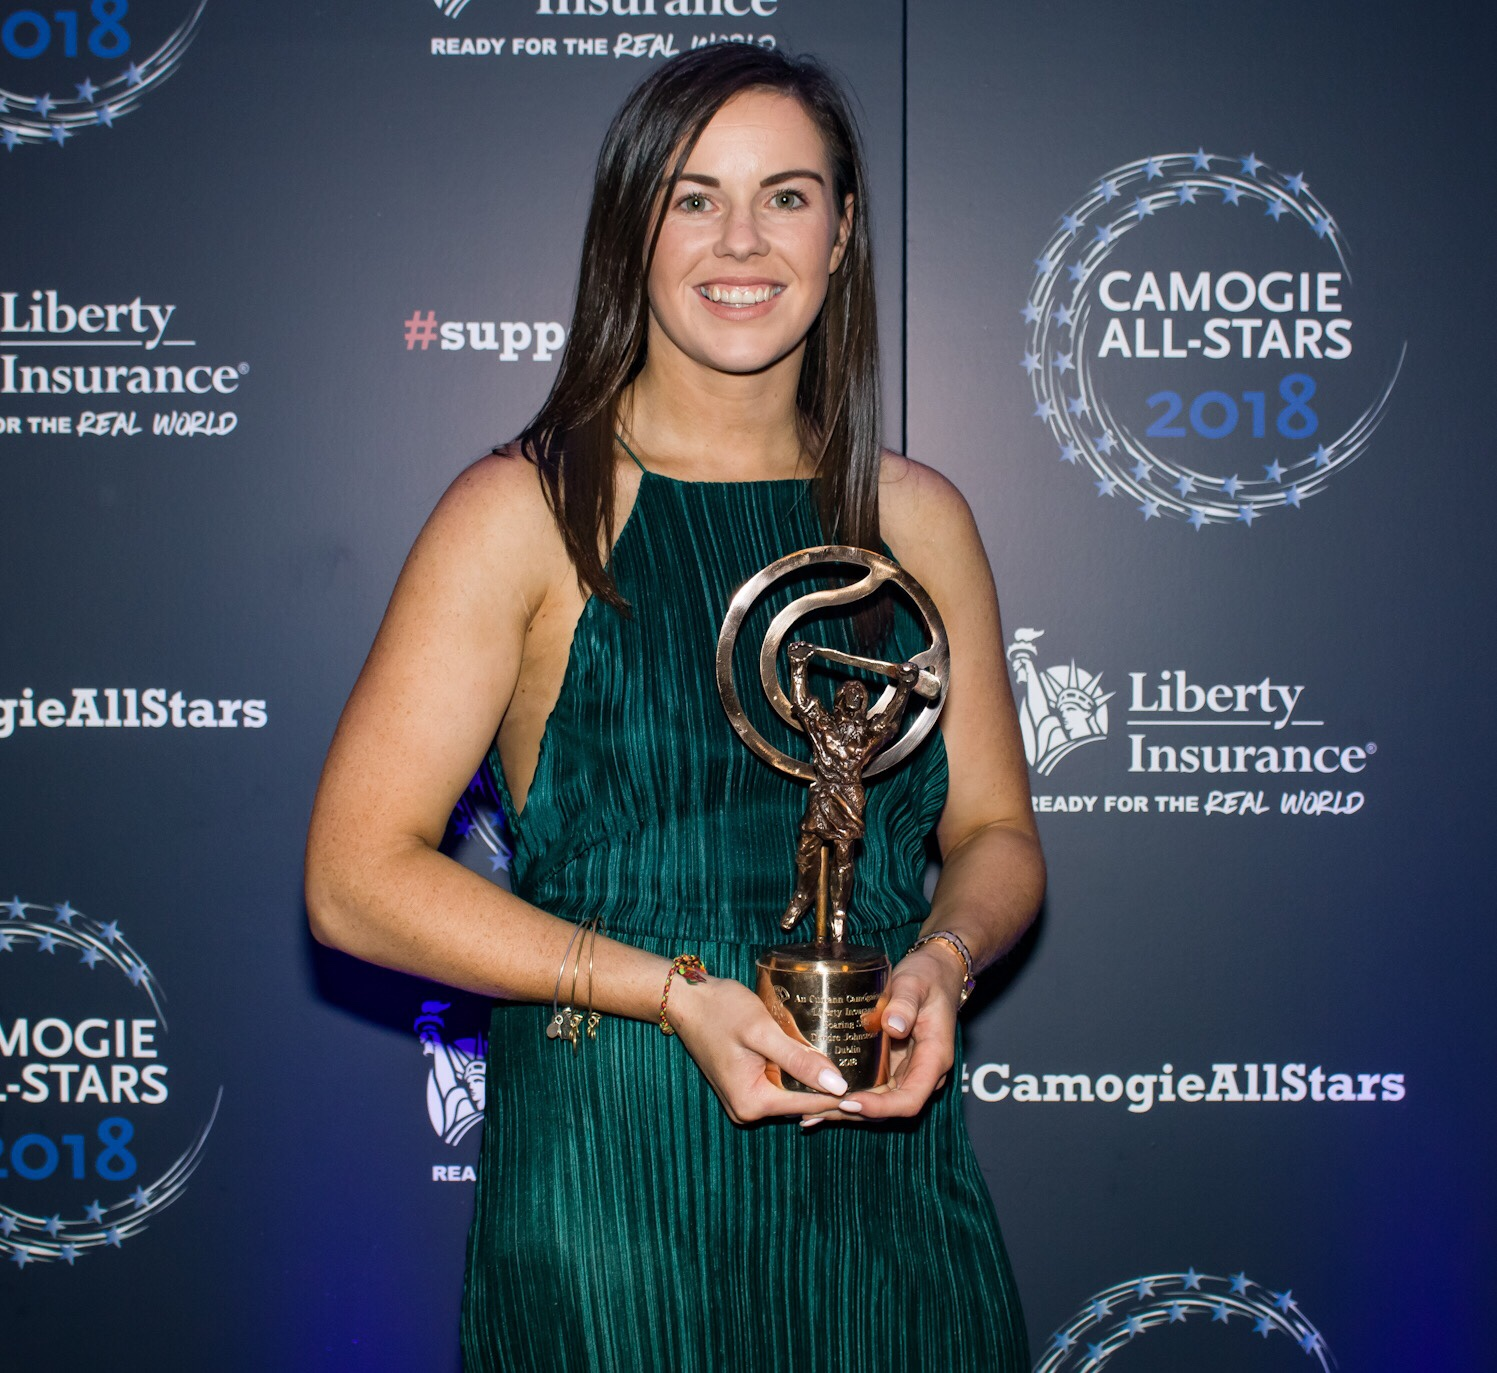 Dublin's Deirdre Johnstone With Her Soaring Stars Award At Last Nights Camogie All-Stars Awards In the Citywest Hotel